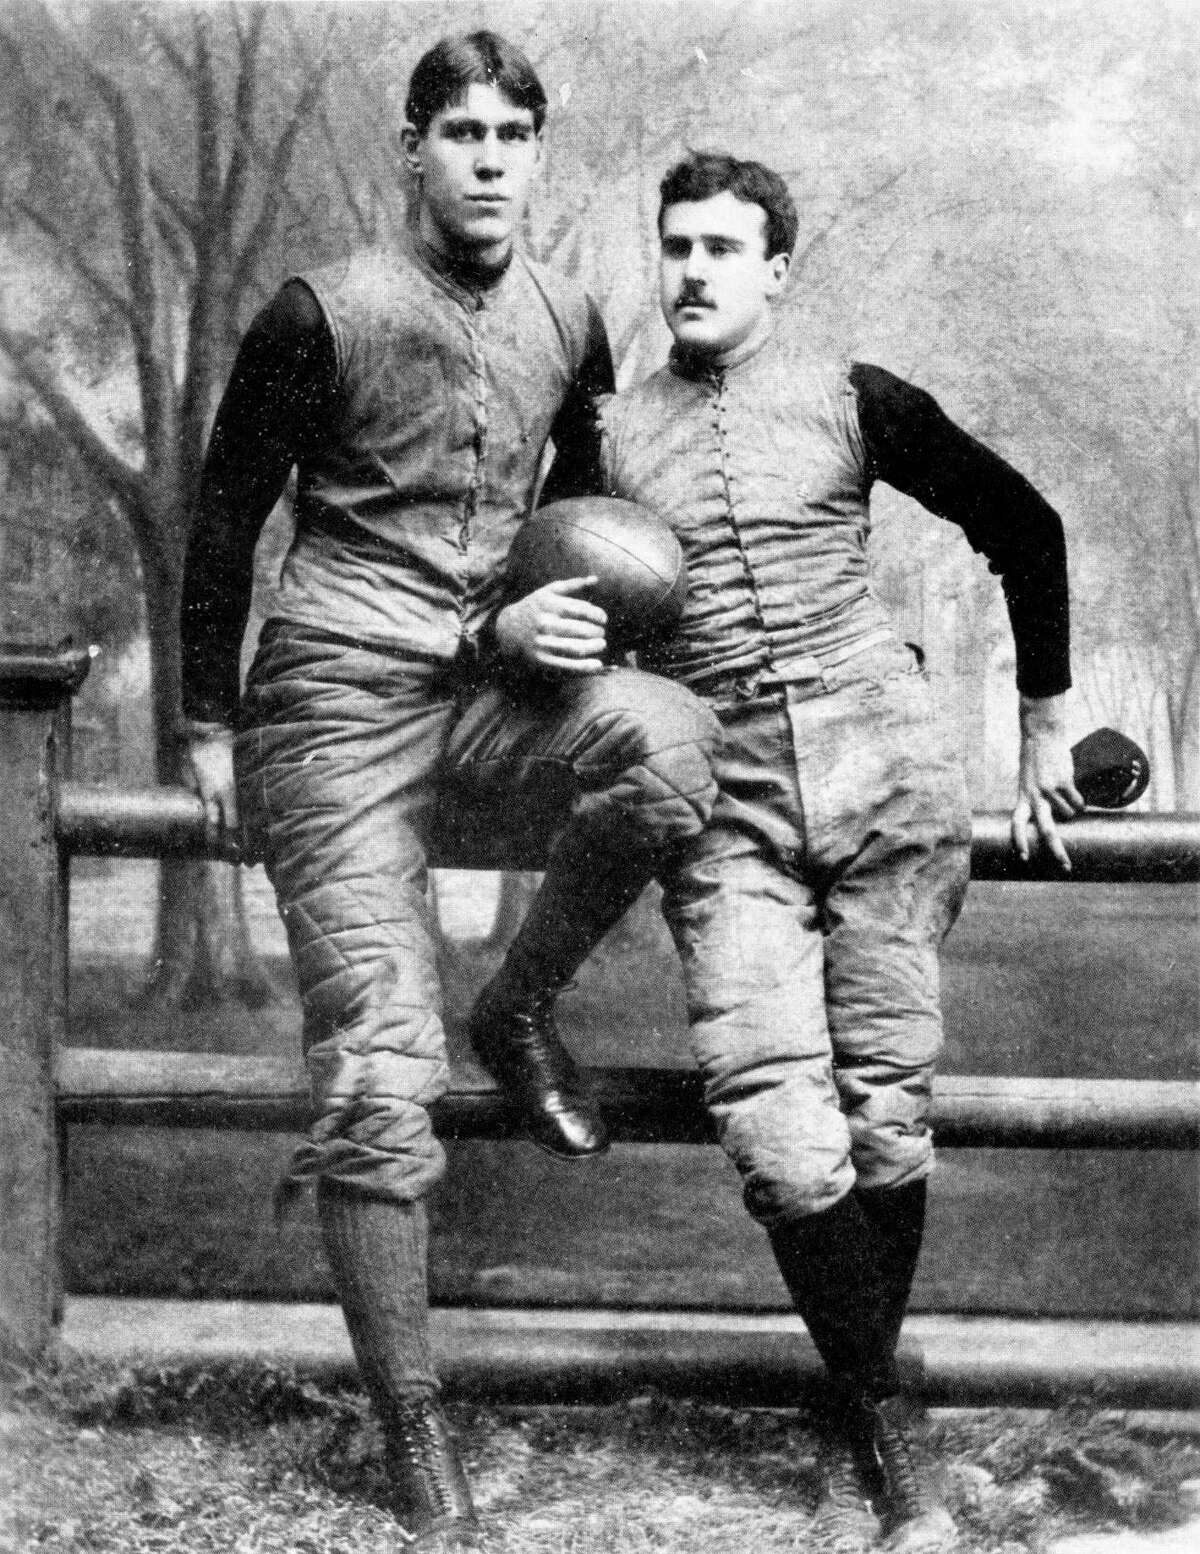 """William """"Pudge"""" Heffelfinger (l), shown here with his Yale teammate Tom """"Bum"""" McClung, was America's first professional football player. A Minnesota native, he called himself a Texan after marrying into a prominent South Texas family."""